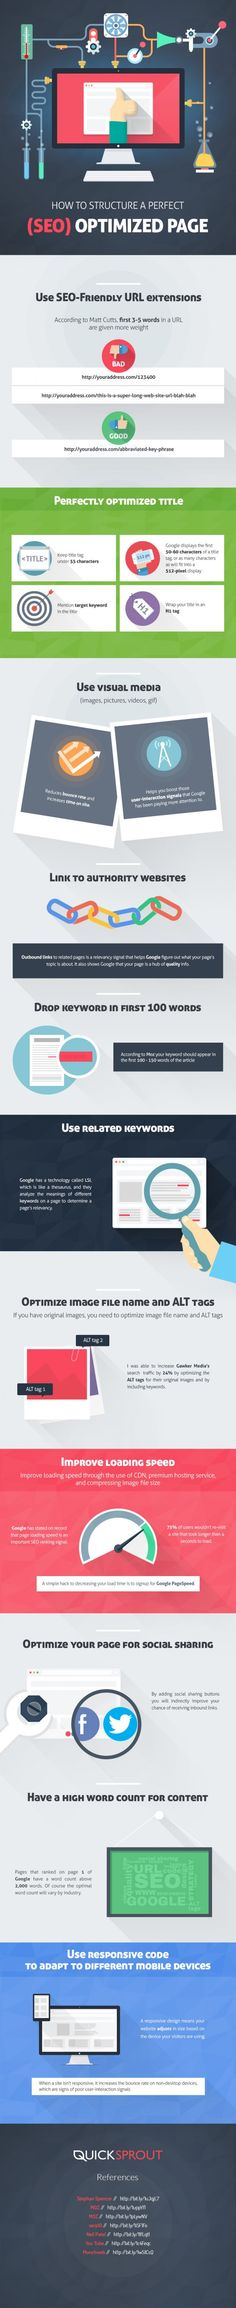 The Perfect SEO-Optimized Blog Post | #infographic #seo #searchengineoptimization